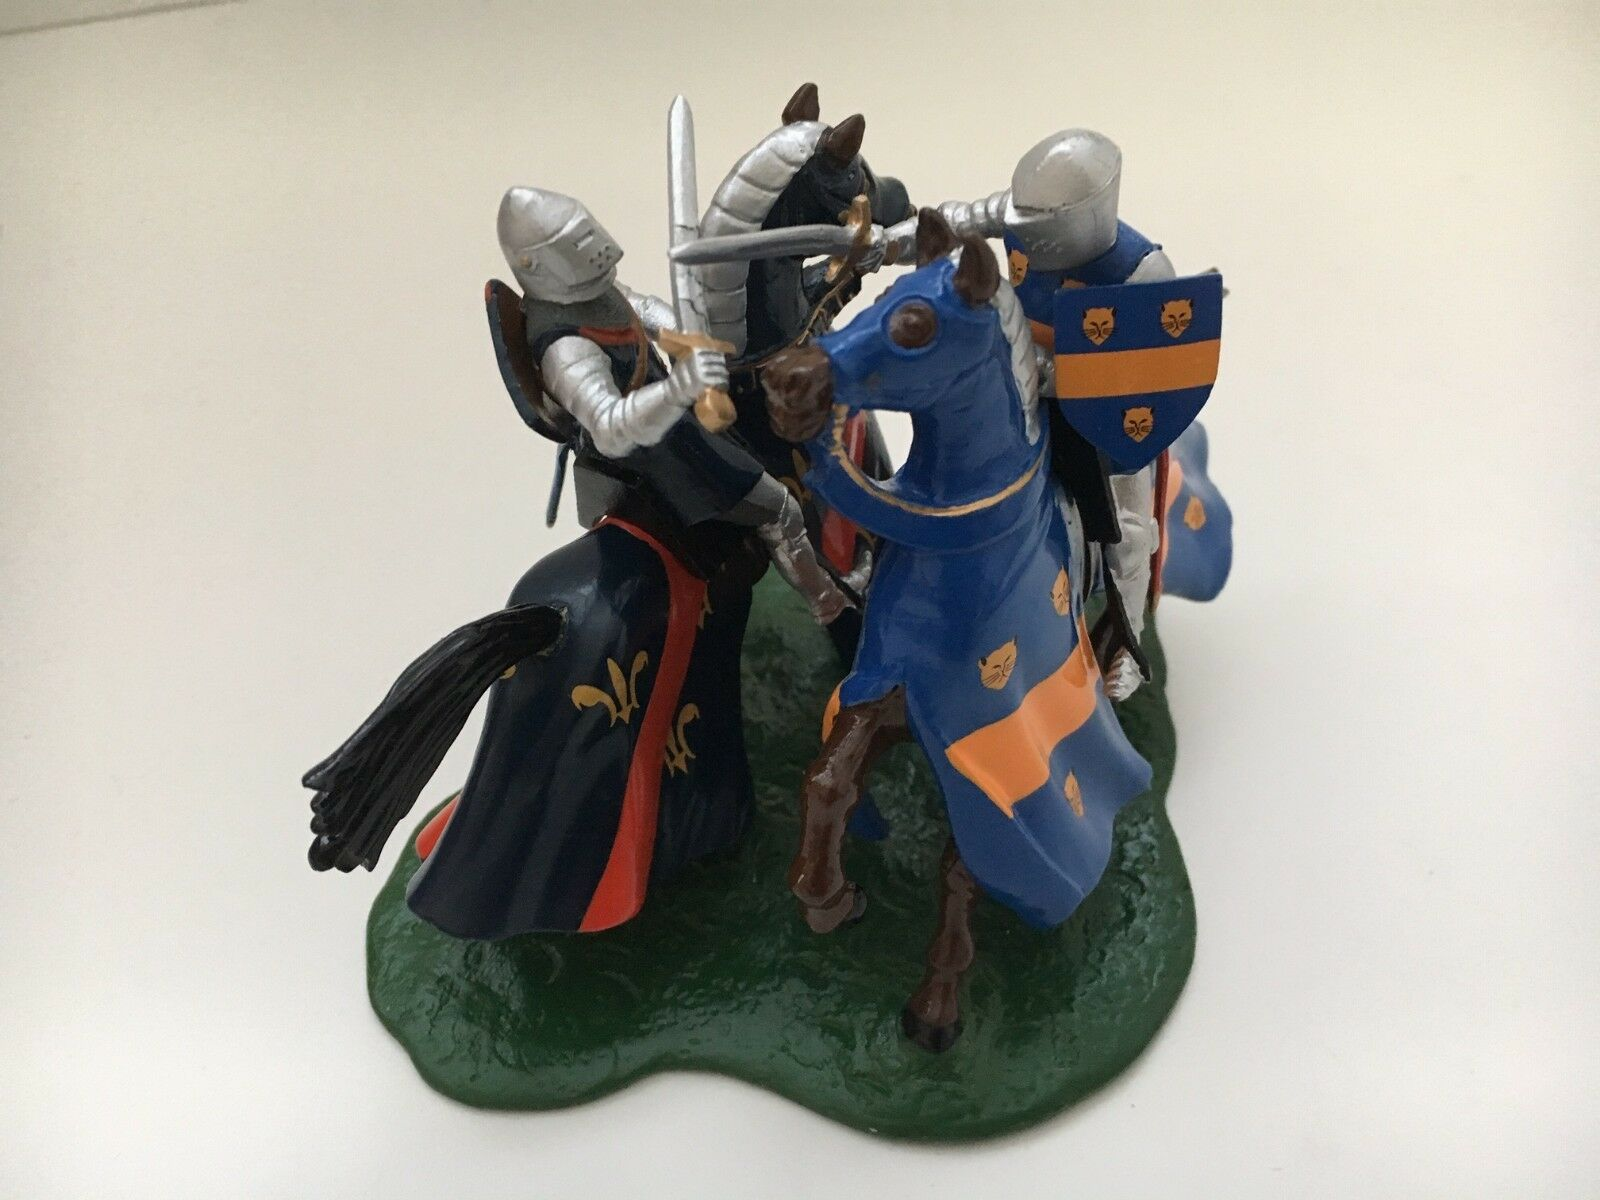 BRITAINS 40240 EARL OF SUFFOLK & DUC DE BOURBON KNIGHTS DUELLING MOUNTED